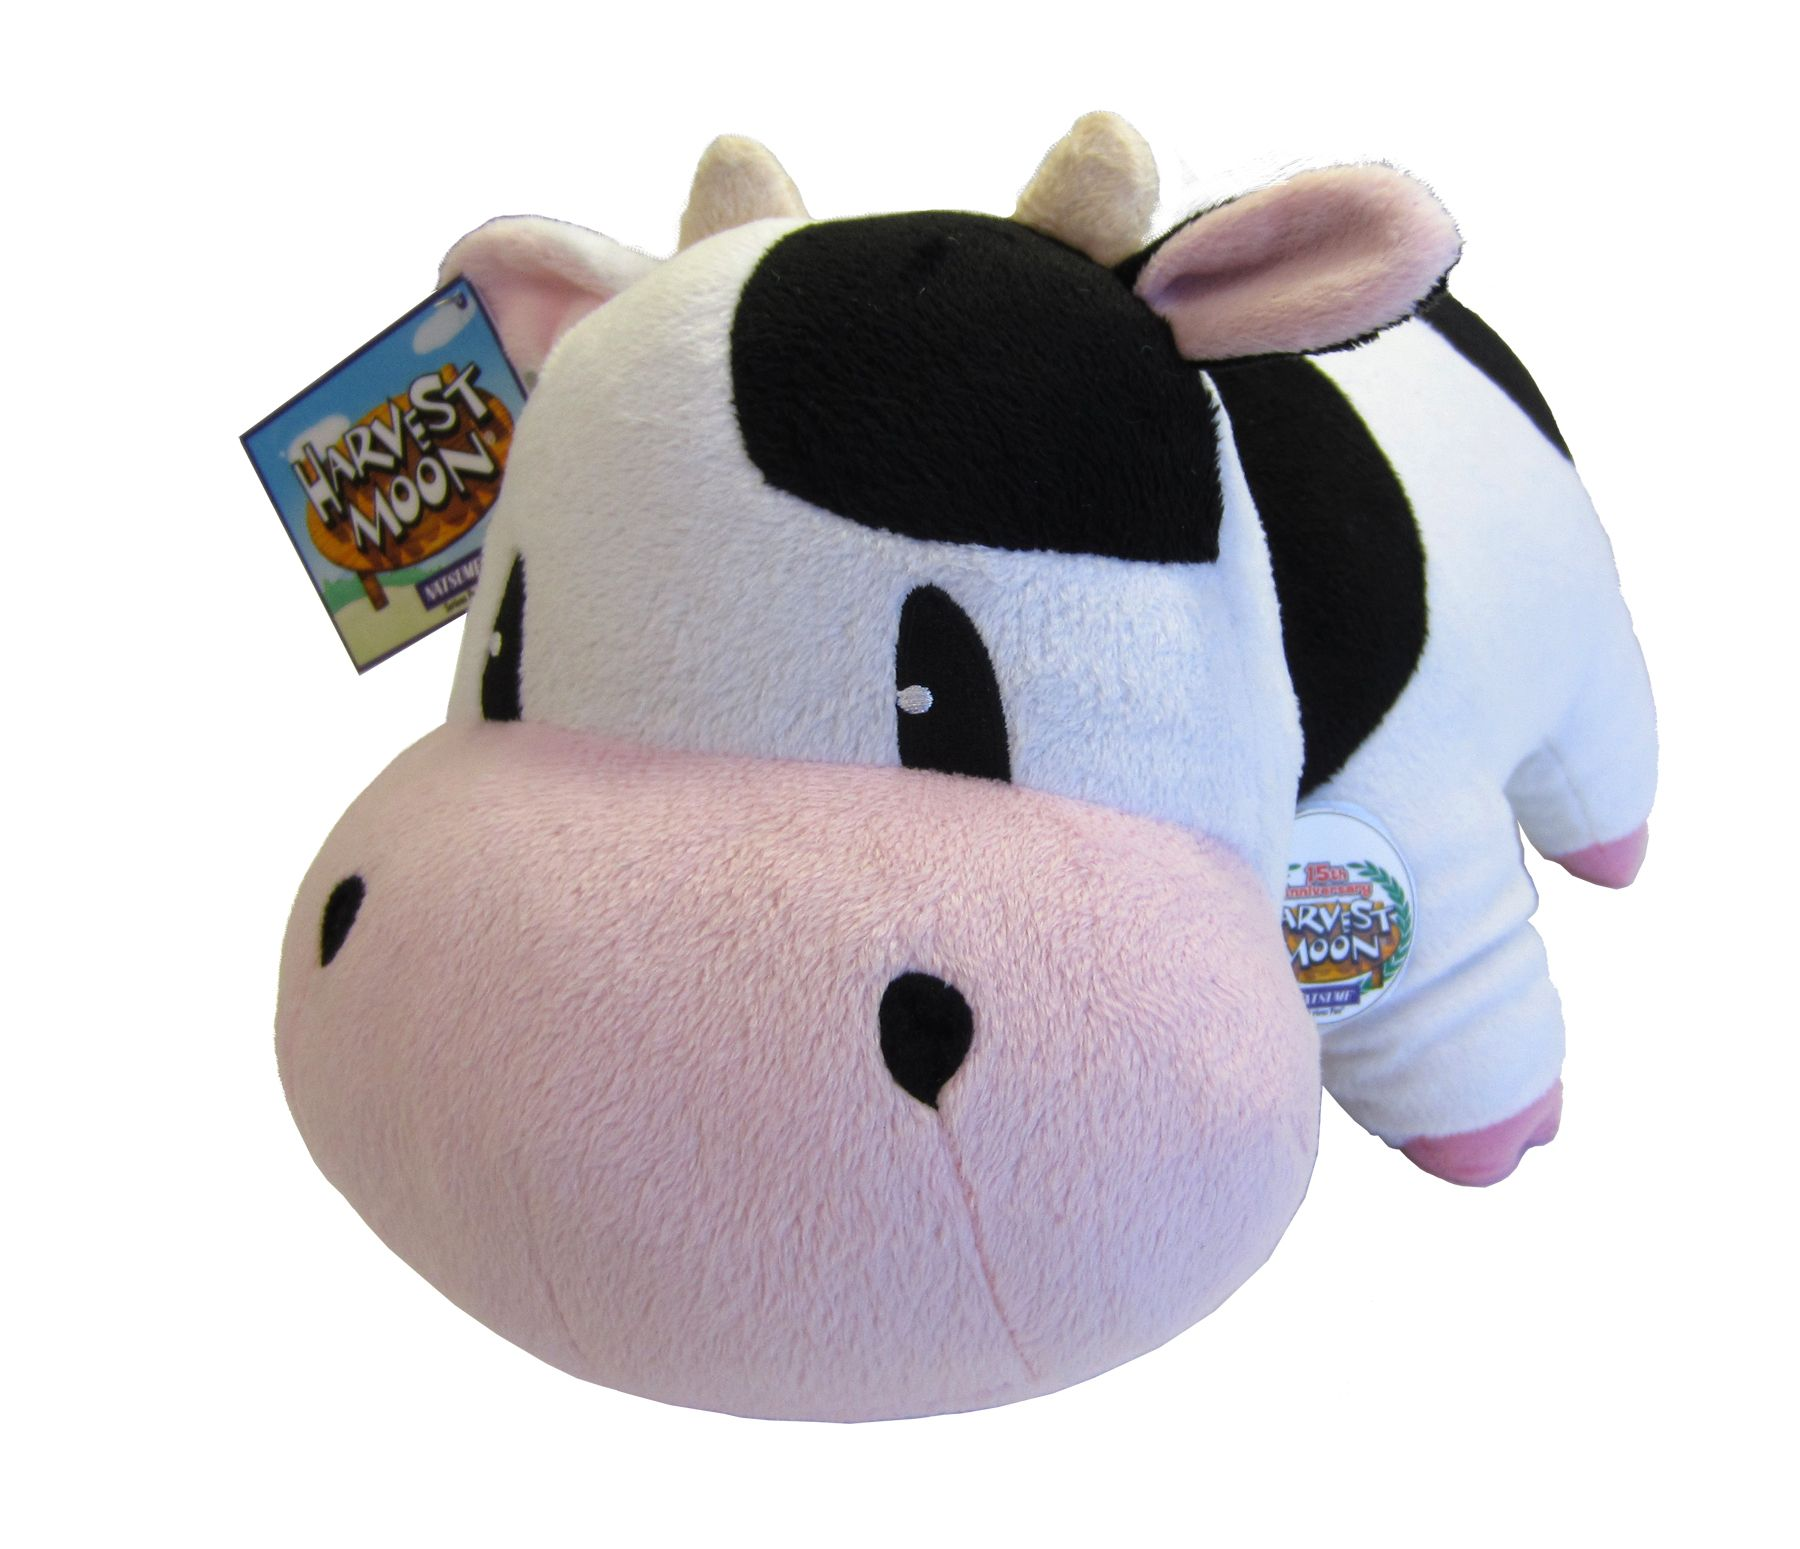 I got the game, but I wanted this cow too. D: